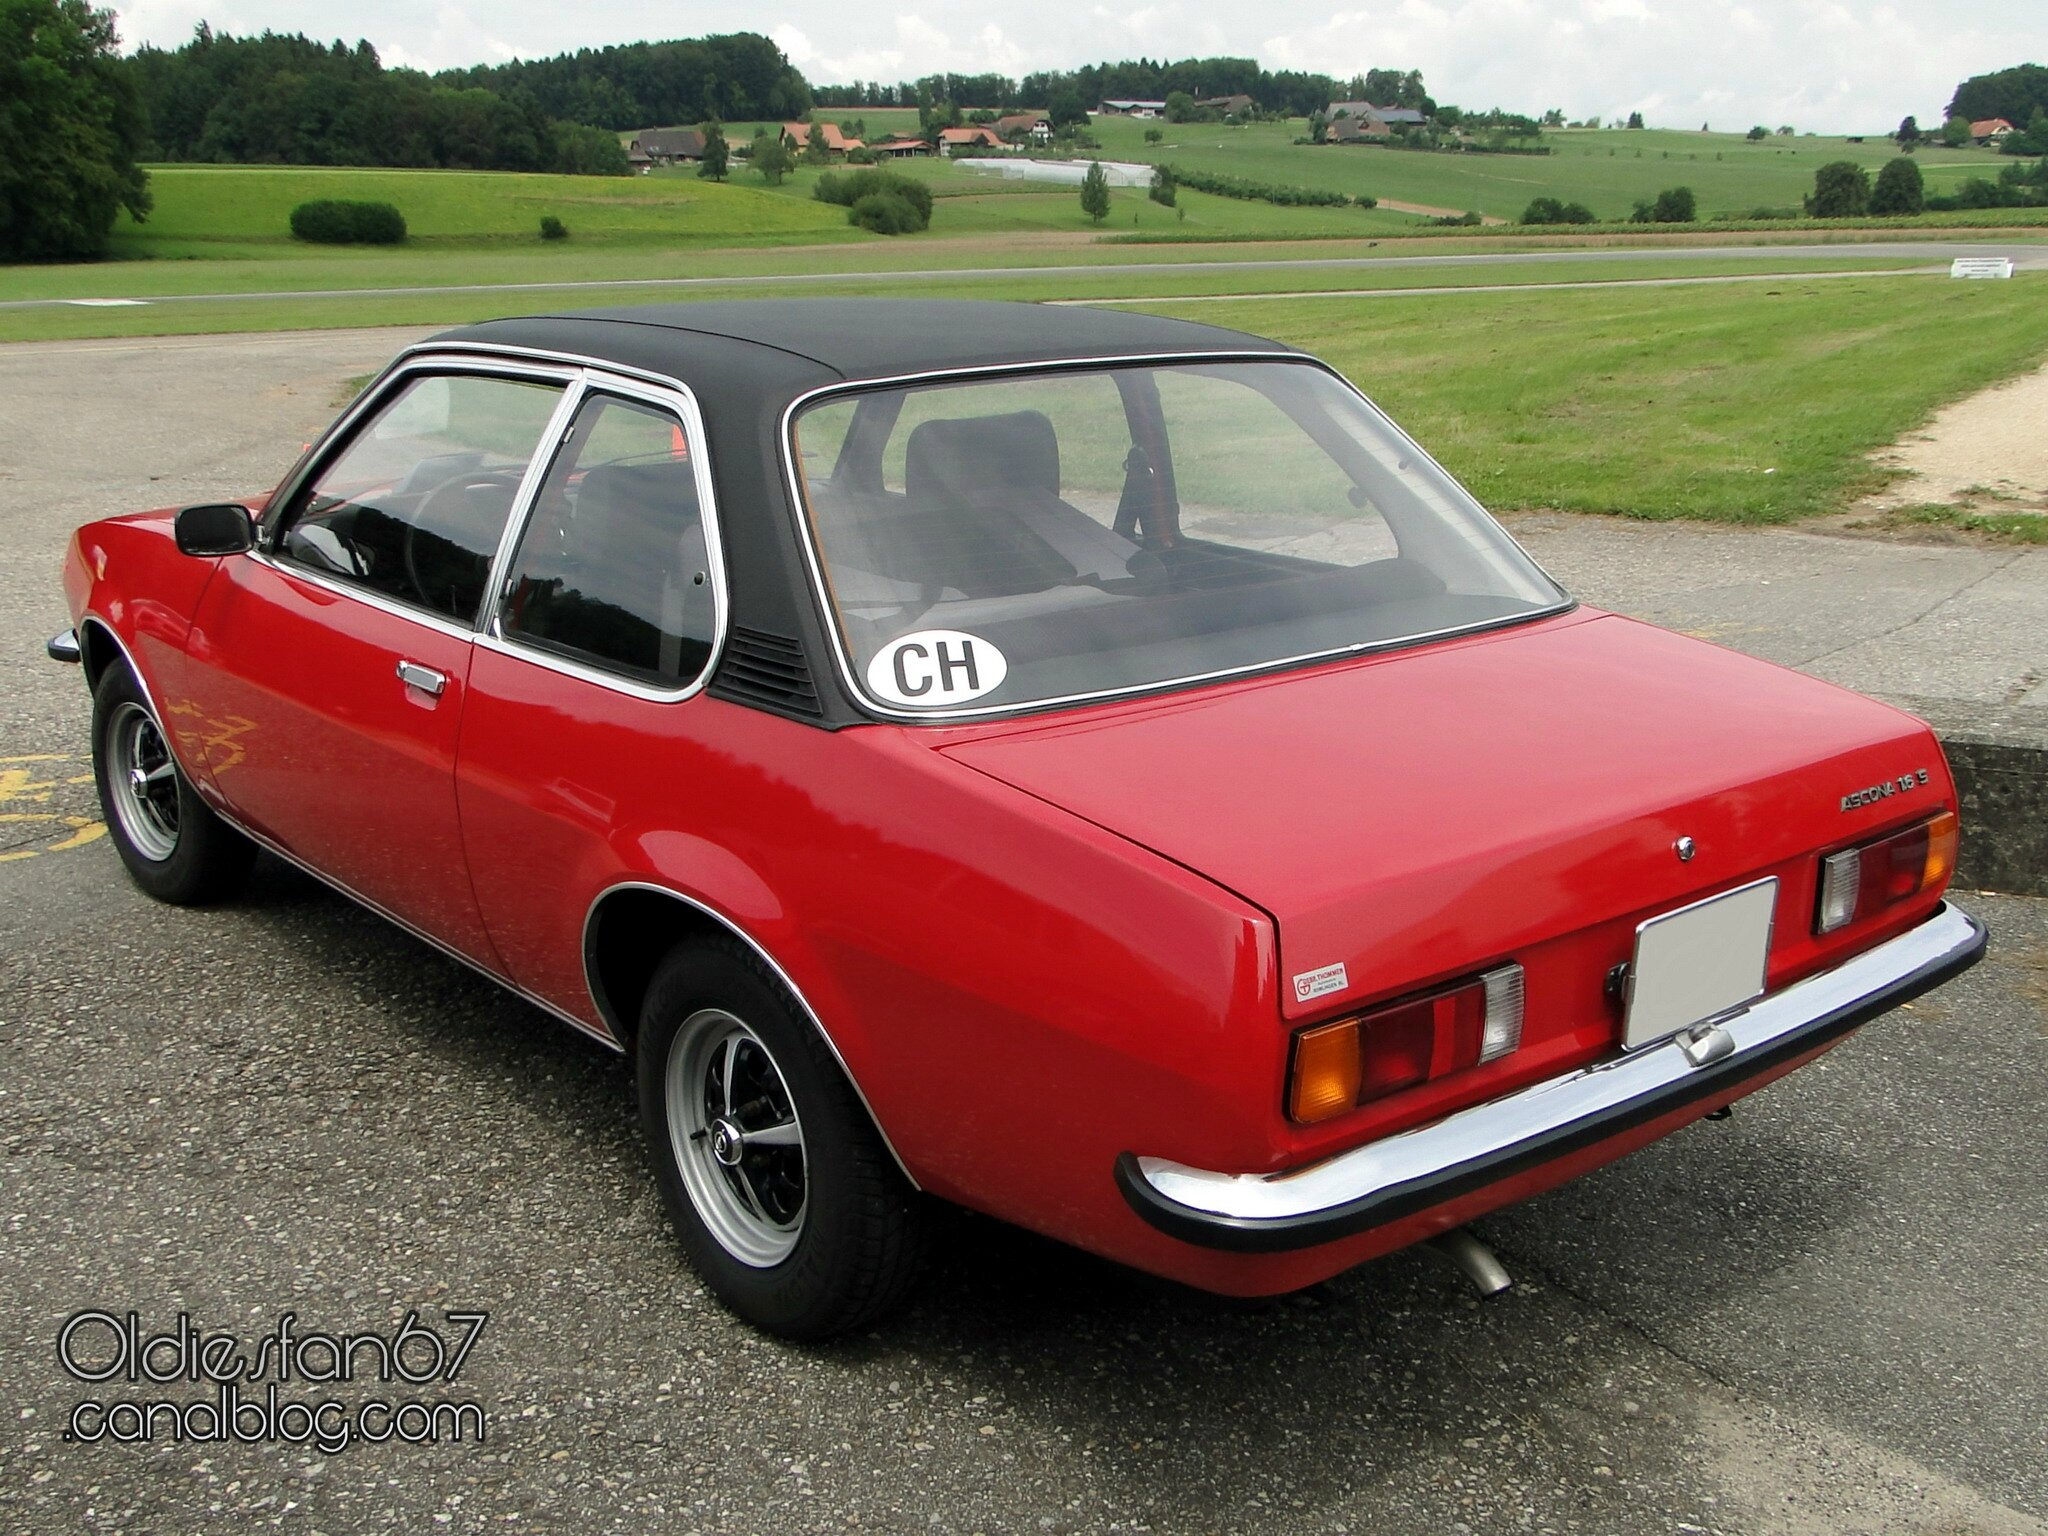 opel ascona b 1 6 s deluxe 2 portes 1975 oldiesfan67 mon blog auto. Black Bedroom Furniture Sets. Home Design Ideas